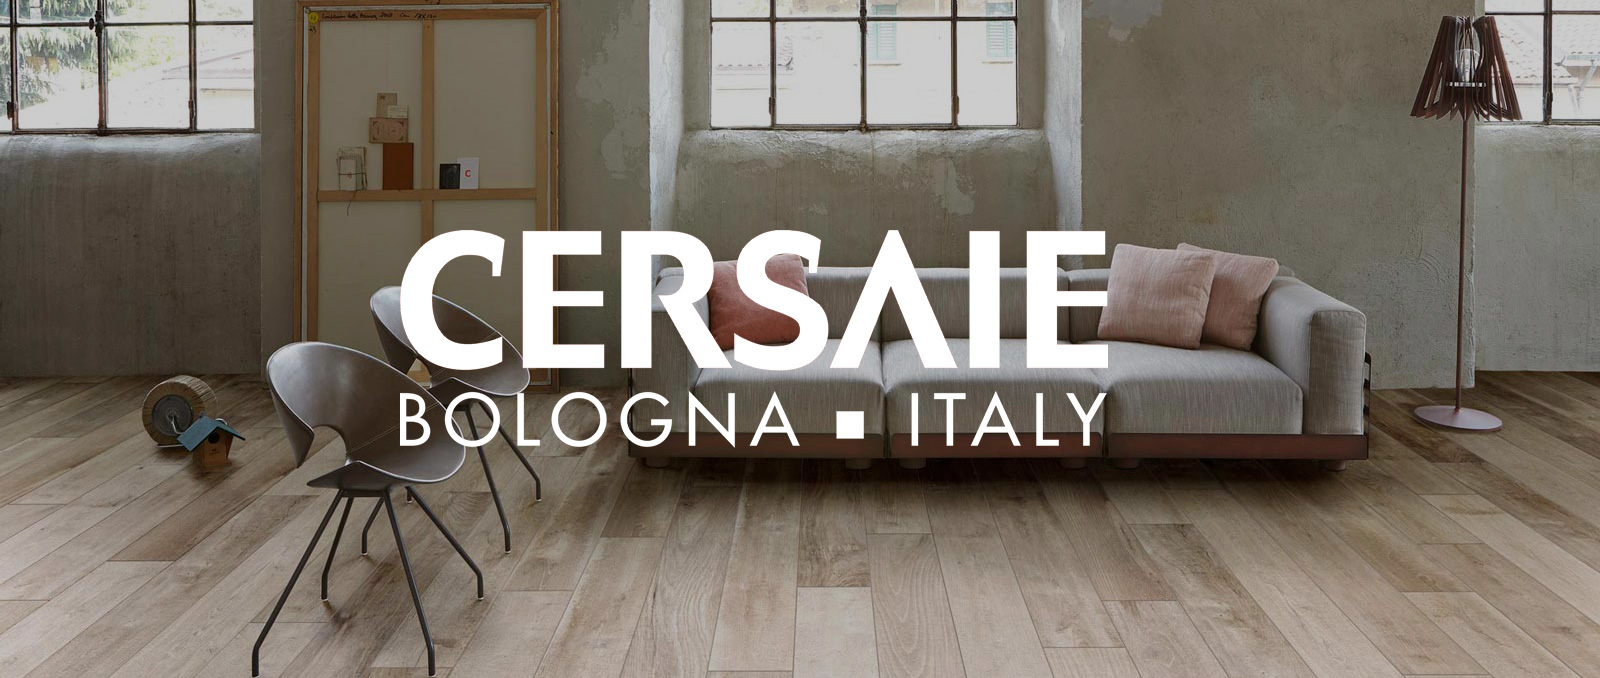 Cersaie 2019: Ragno presents its latest ceramic and stoneware tiles